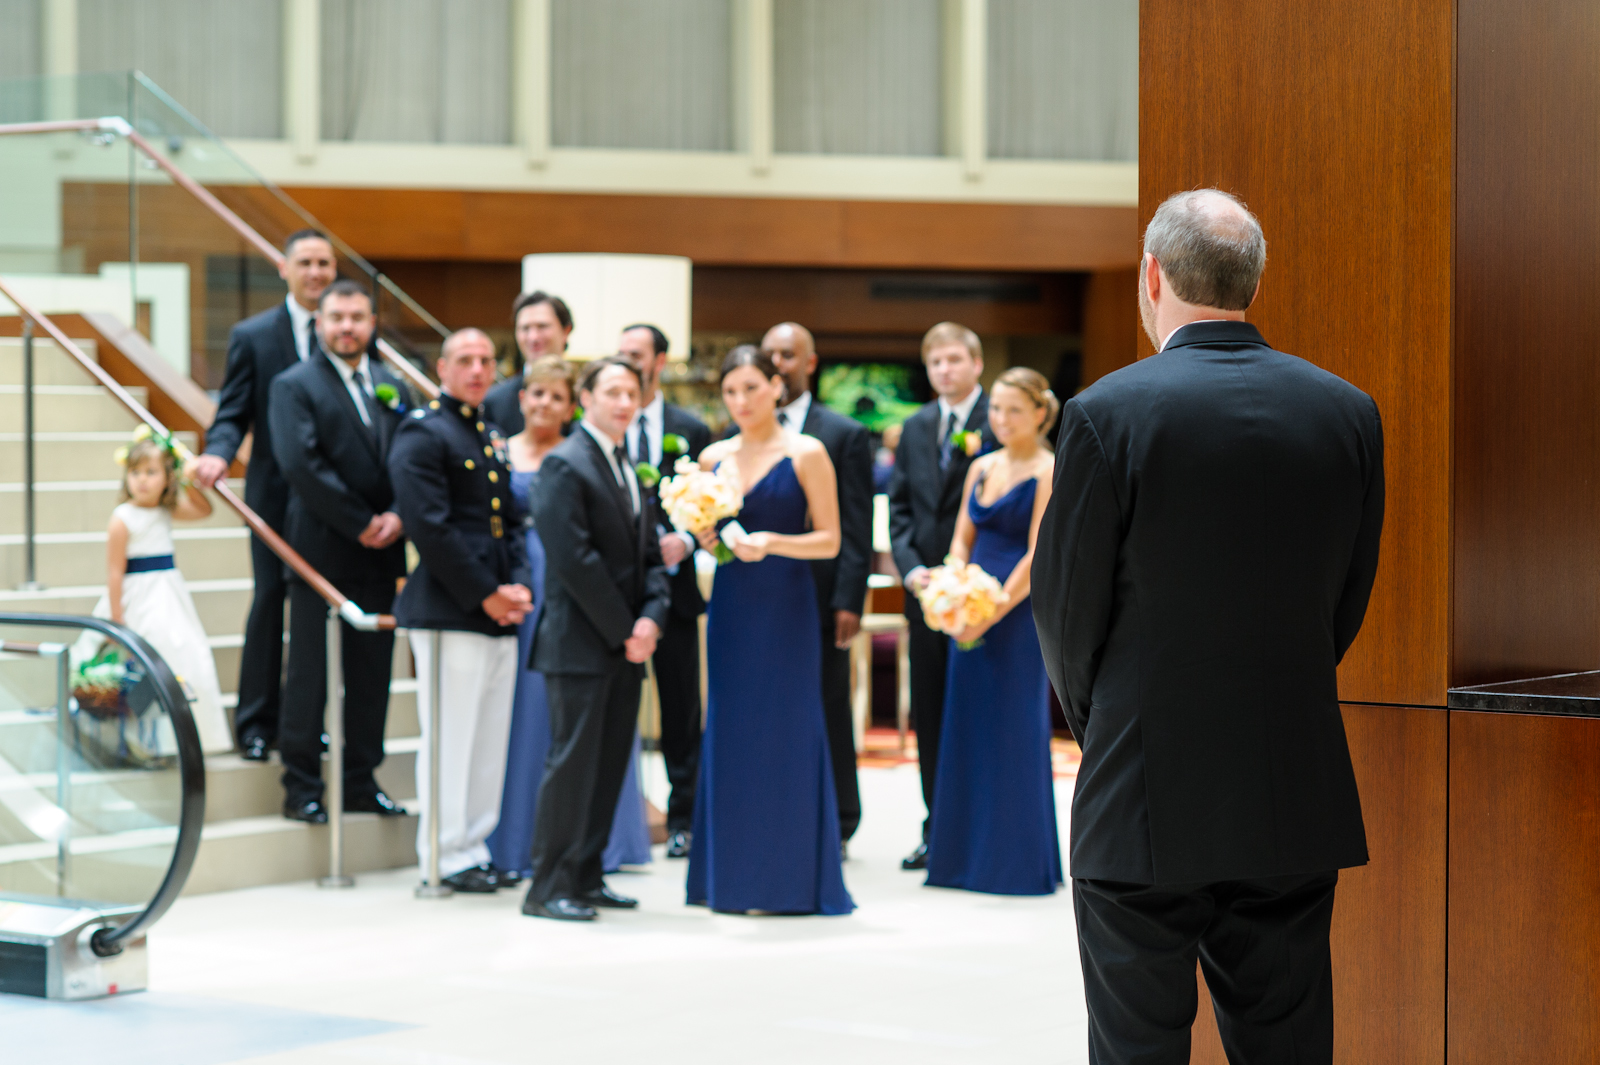 wedding photography dc photographer - district of columbia photography weddingphoto 2012_-13.jpg